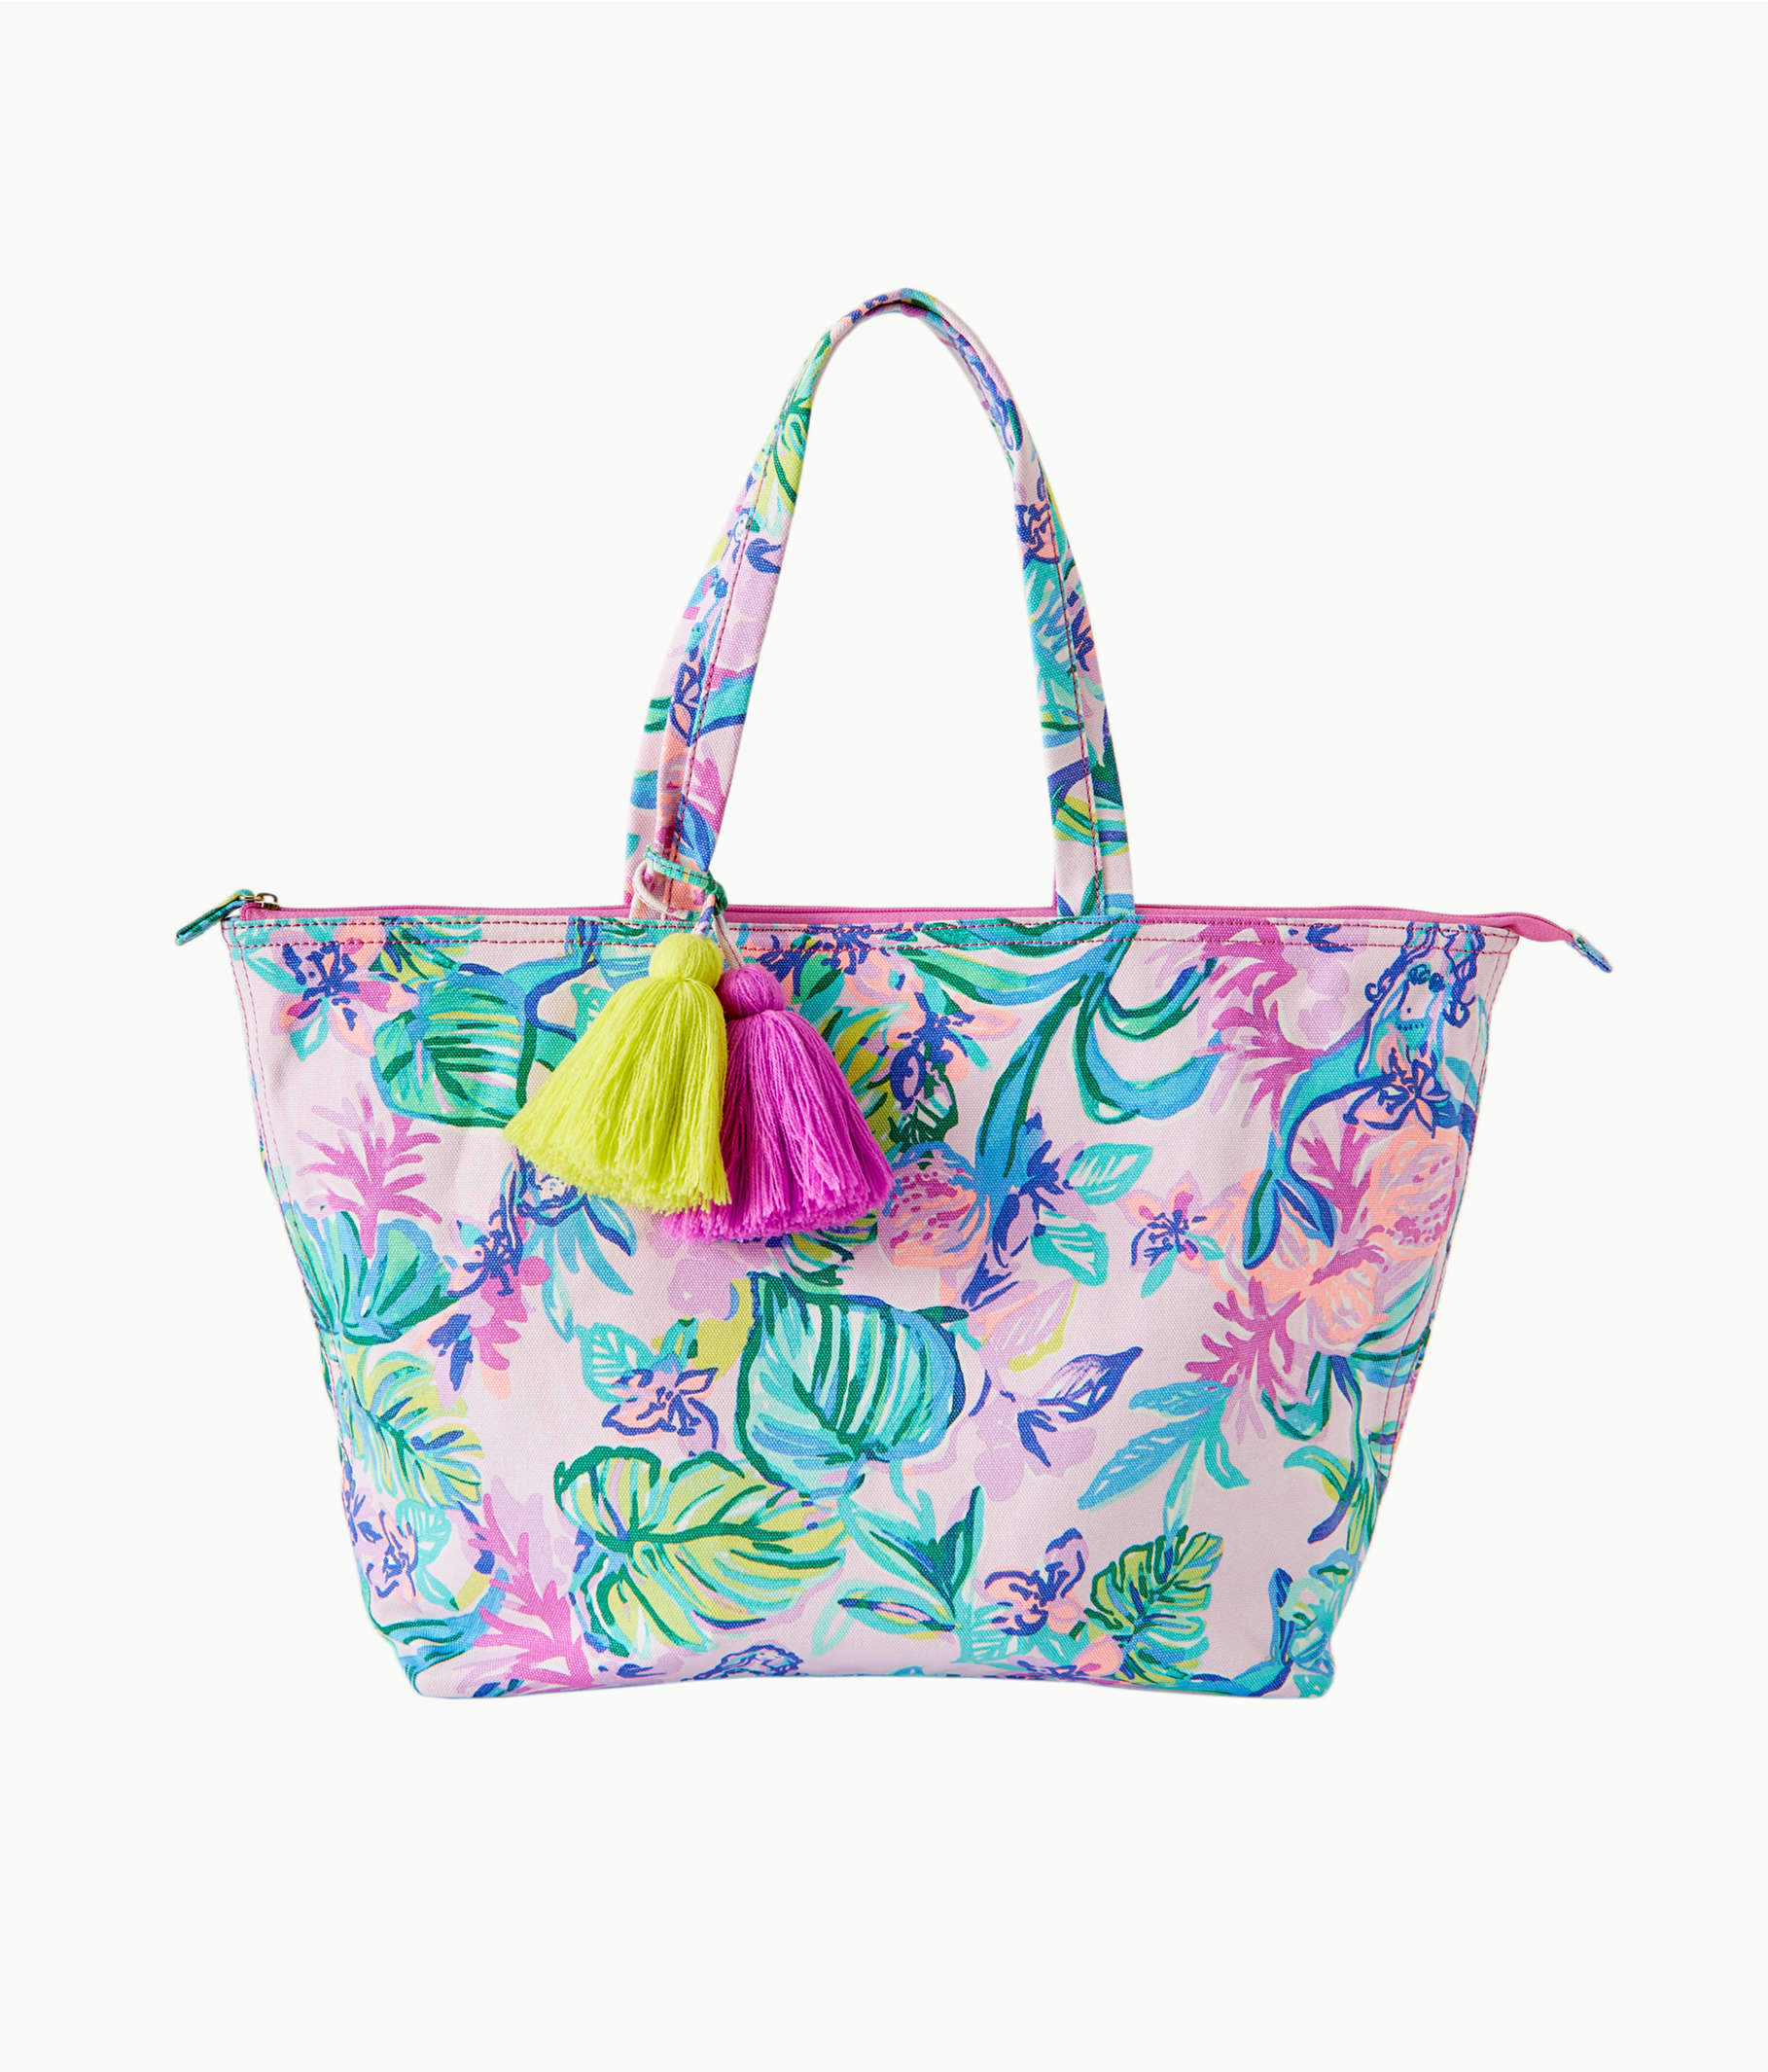 28ca99282 Palm Beach Zip Up Tote, Amethyst Tint Mermaid In The Shade, large Zoom